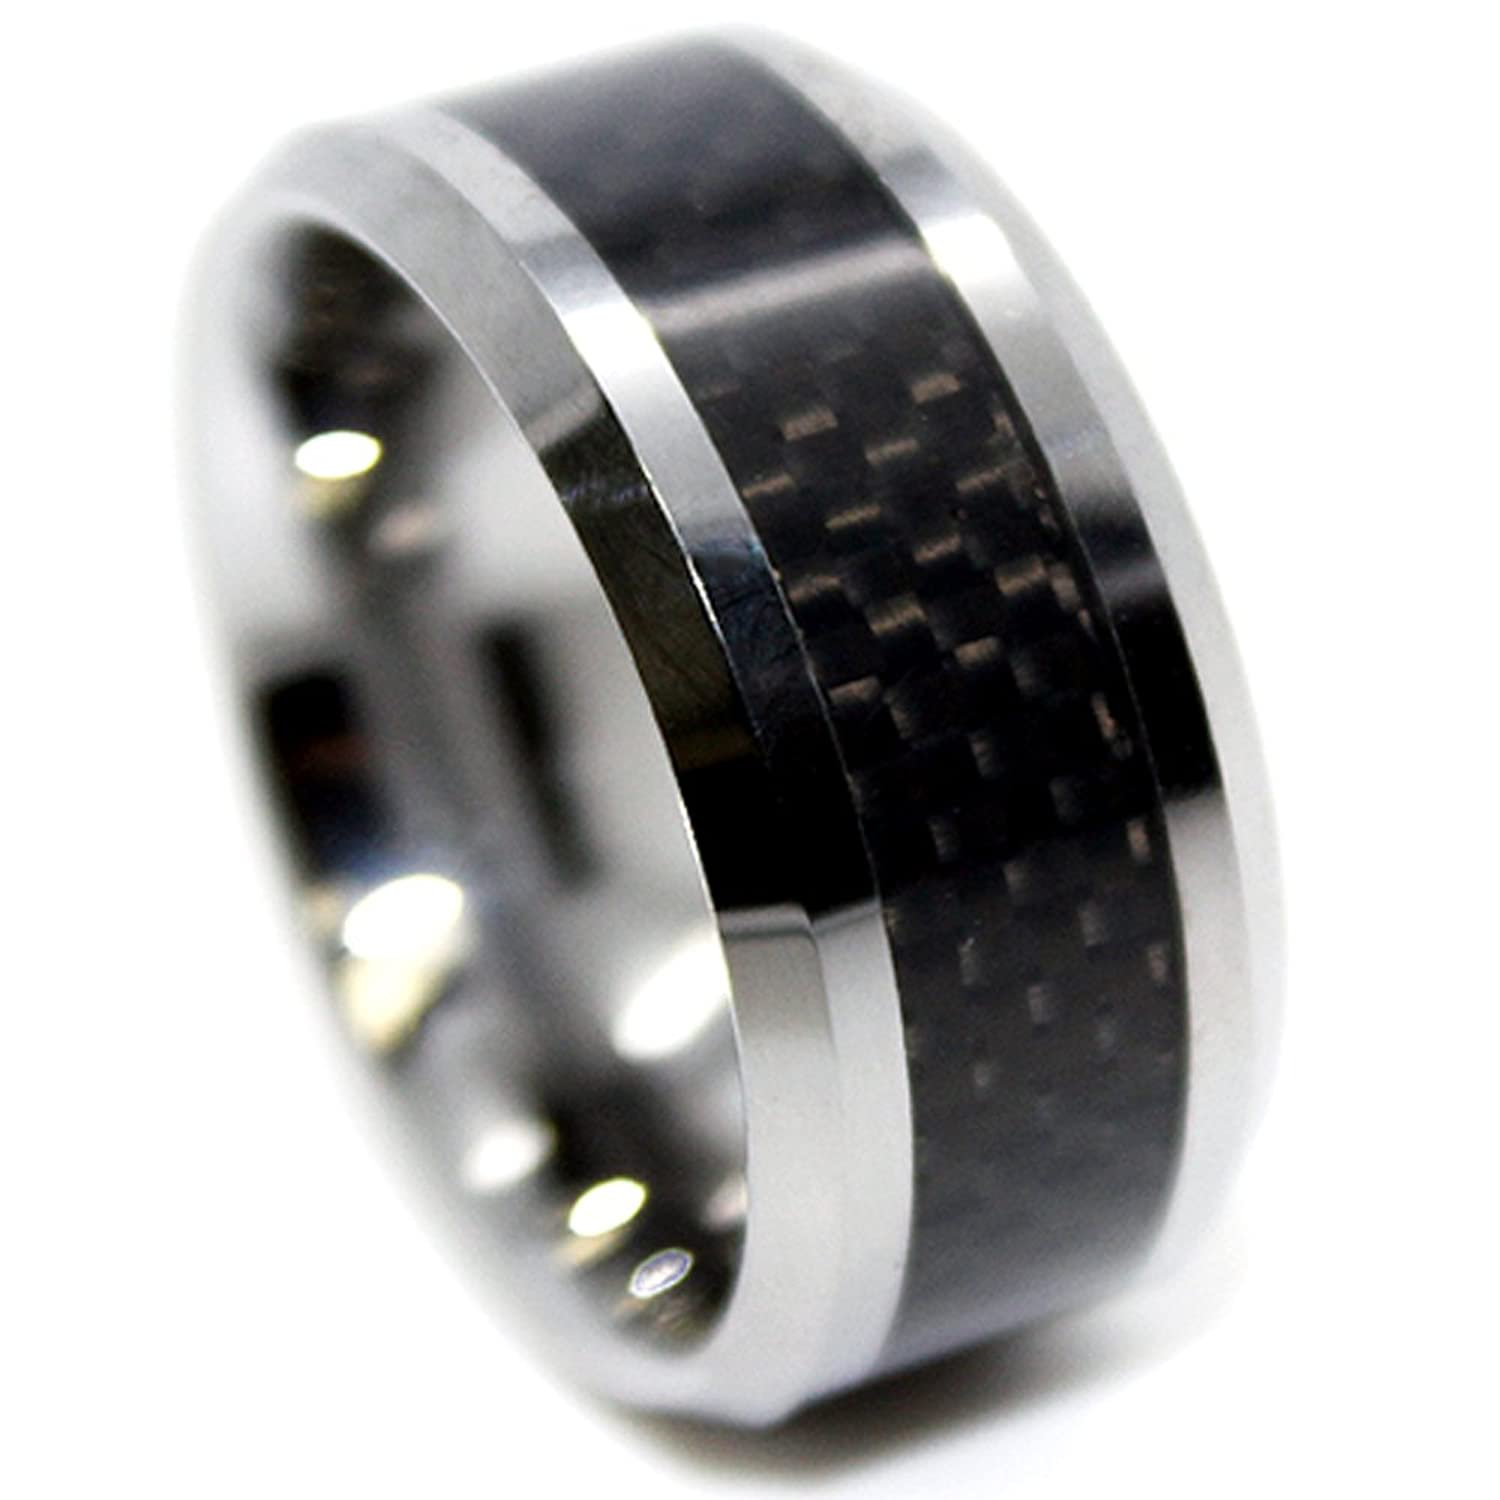 white band zoom black ring inlay cobalt fiber diamond rings chrome carbon loading wedding